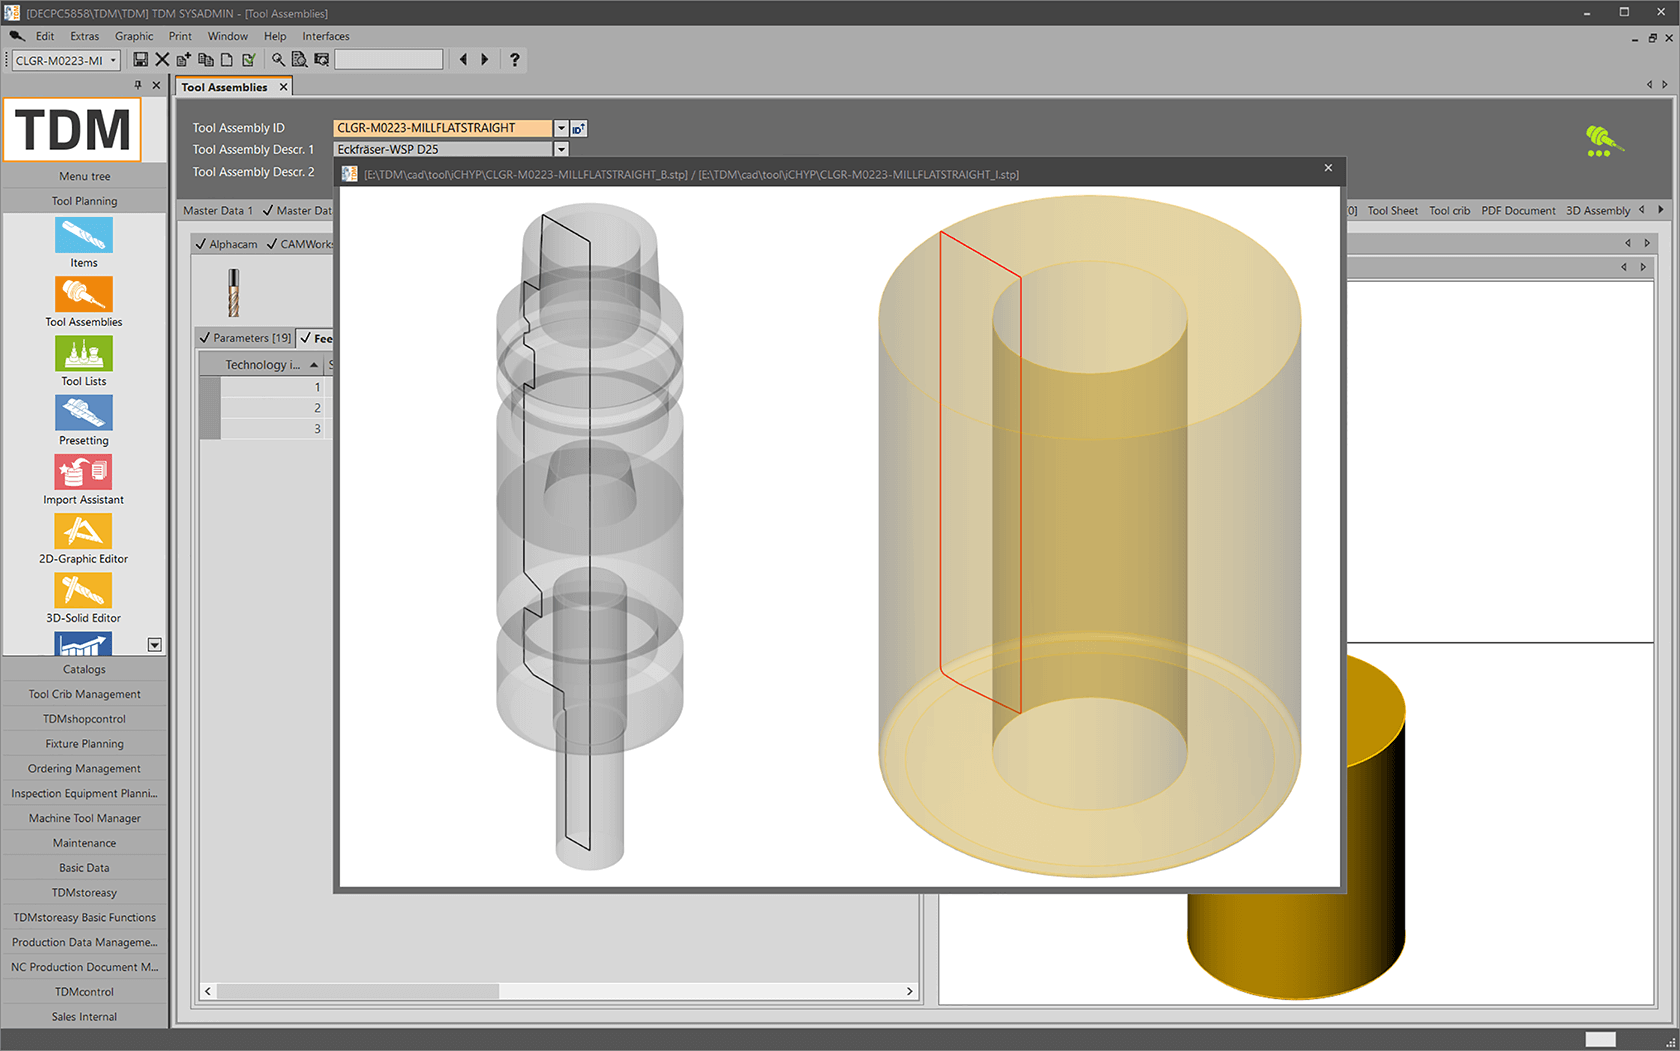 Create rotating tool graphics with the TDM Tool Contour Generator - 3d model and tool contour. (screen view)